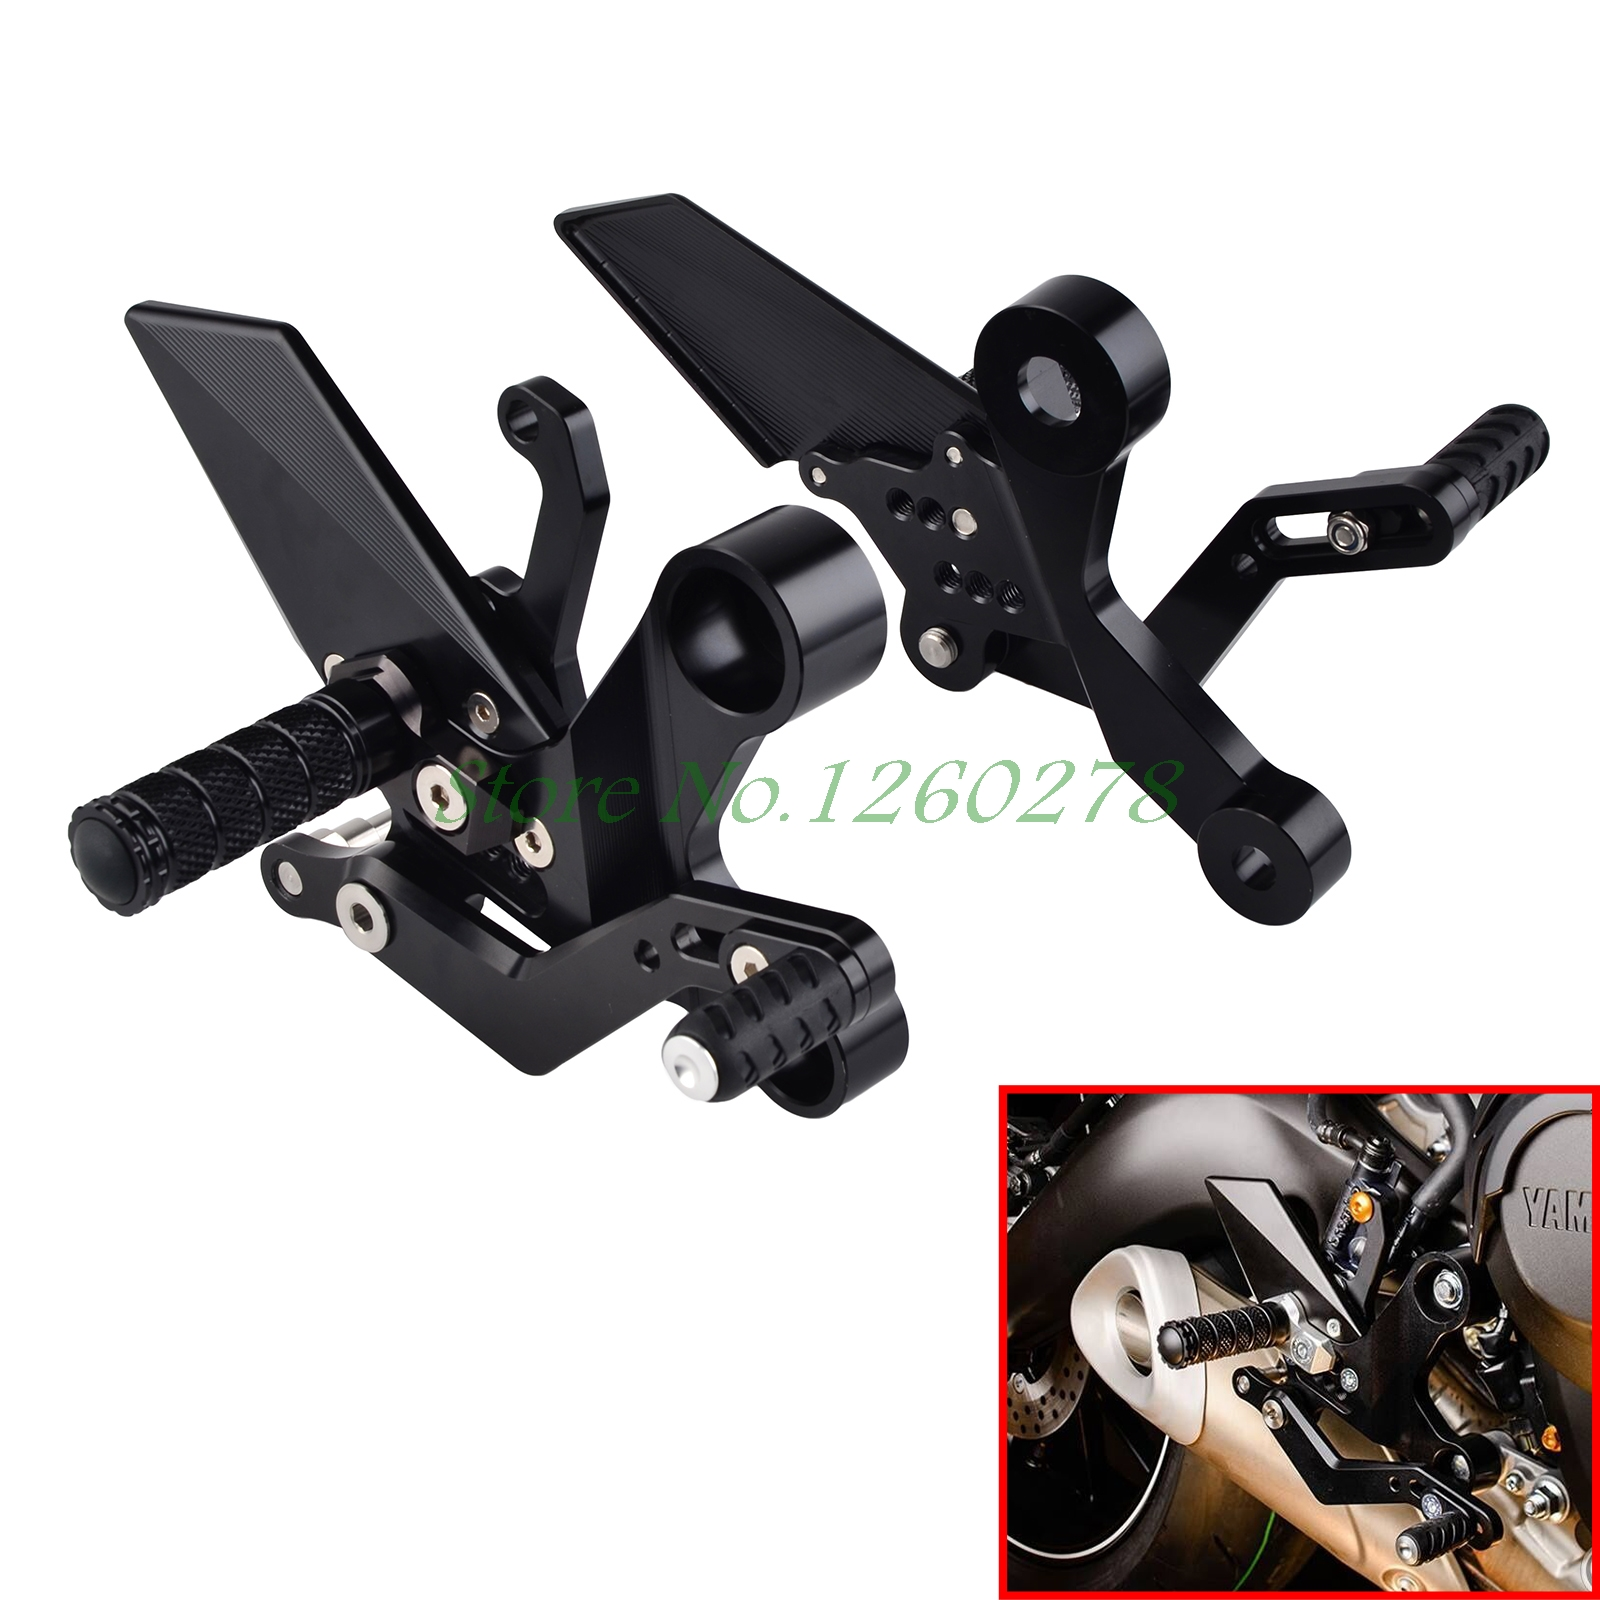 CNC Billet Racing Adjustable Rearset Foot Pegs Rear Sets For Yamaha MT09 TRACER XSR900 FZ09 2013 2014 2015 2016 2017 2018